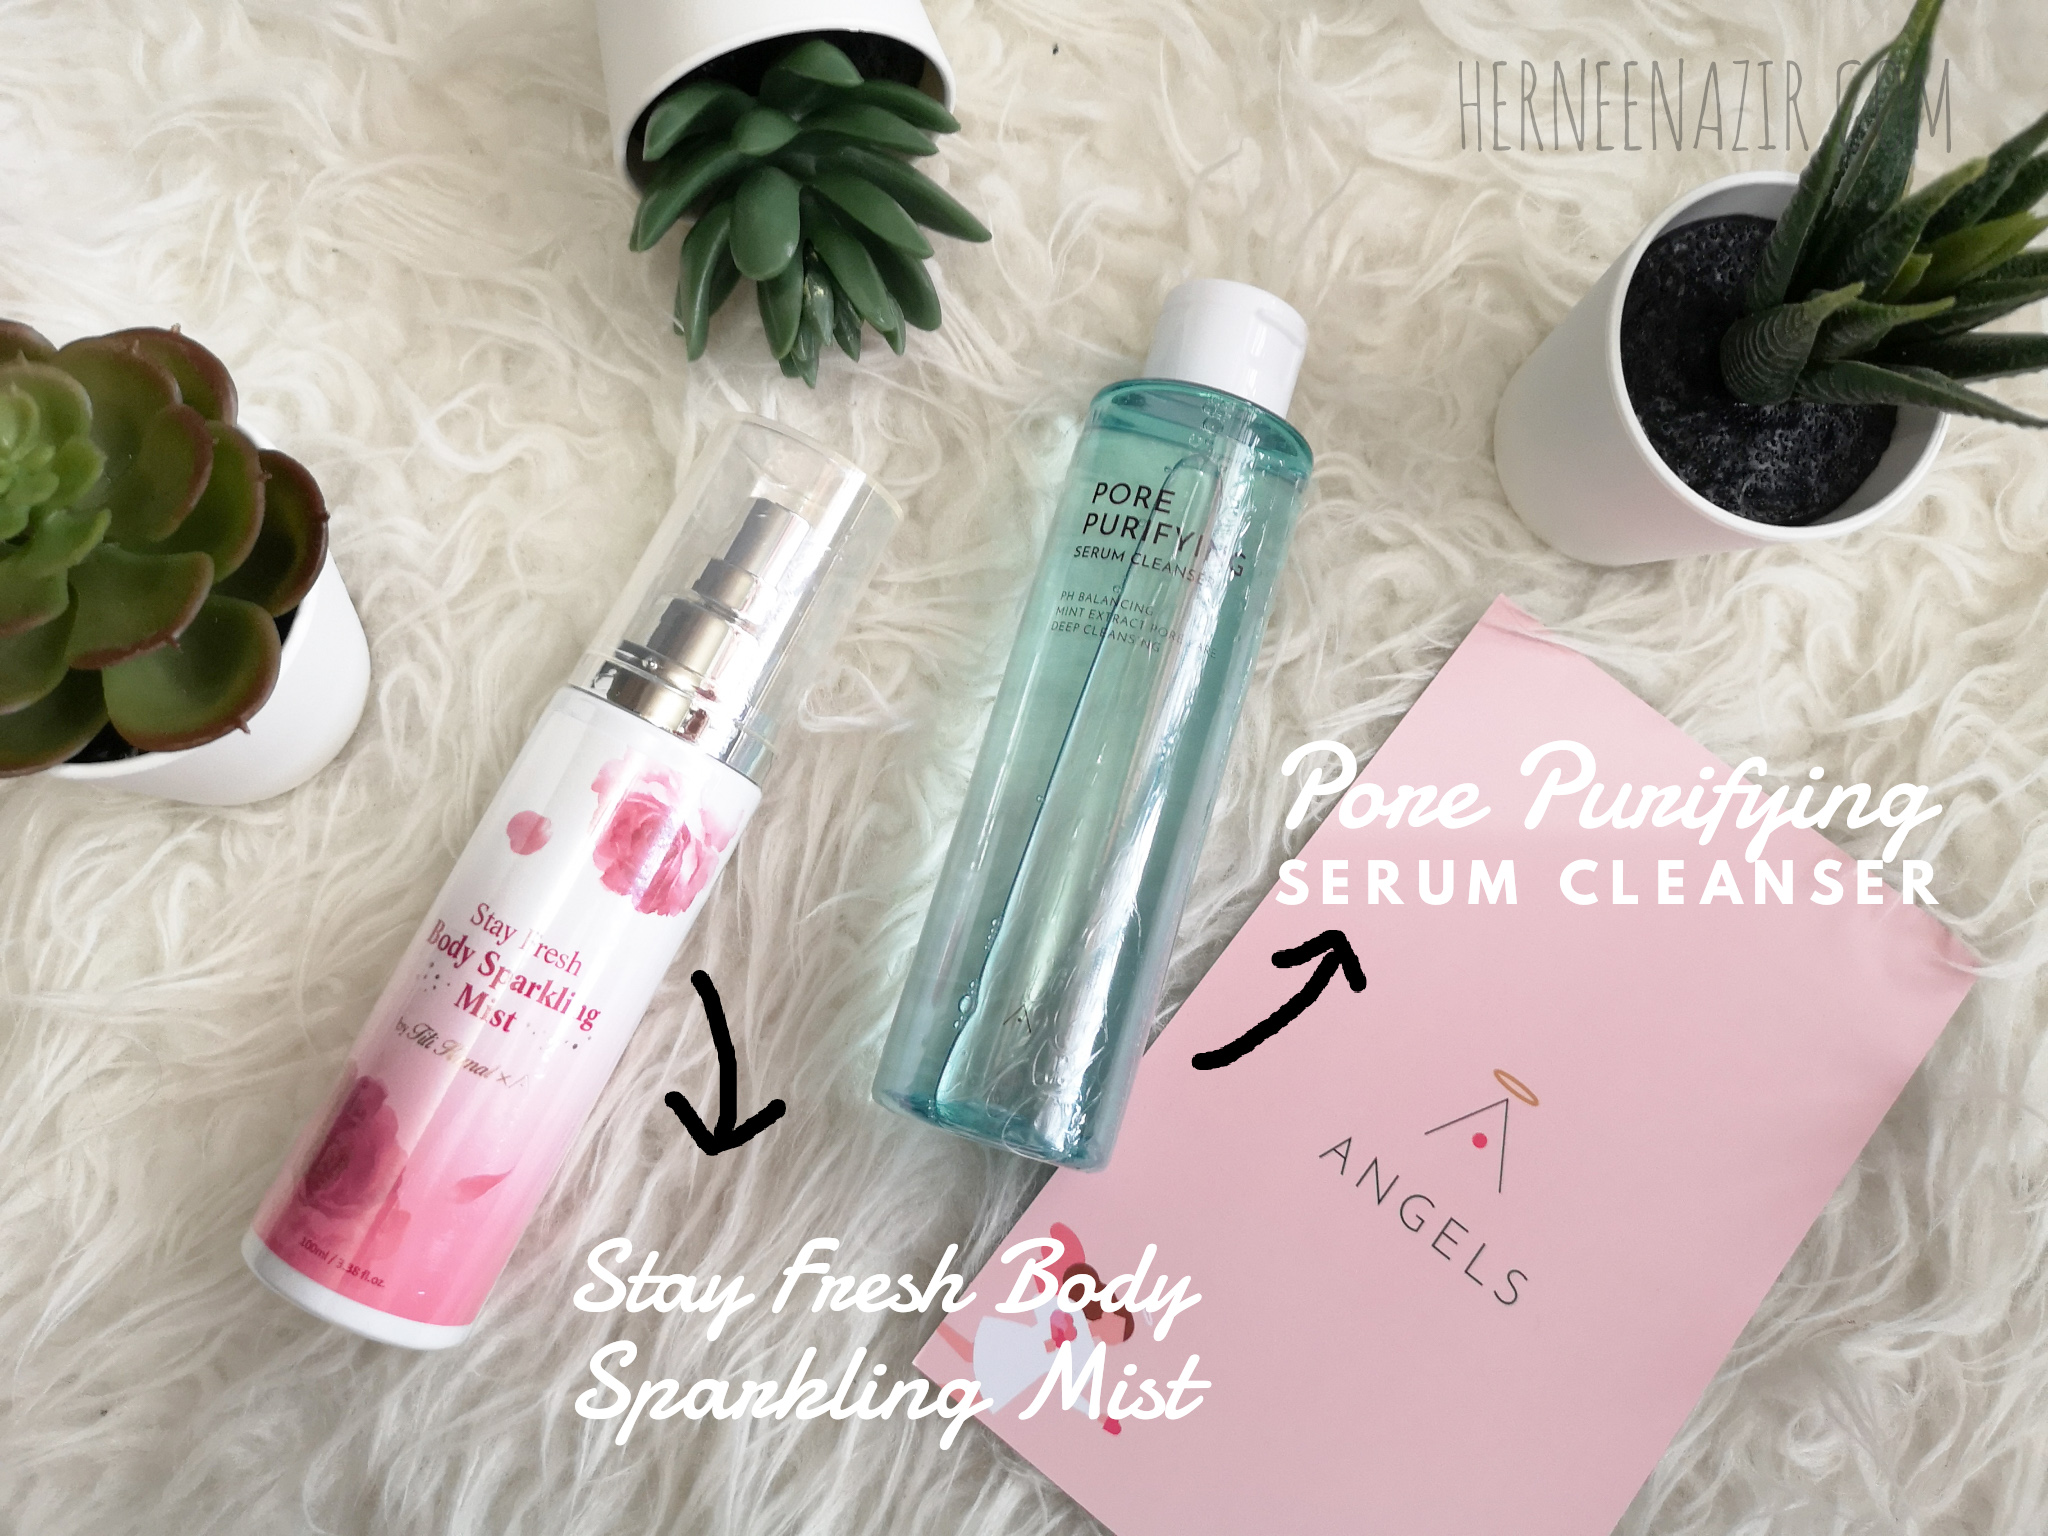 Stay Fresh Body Sparkling Mist & Pore Purifying Serum Cleanser by Althea Korea